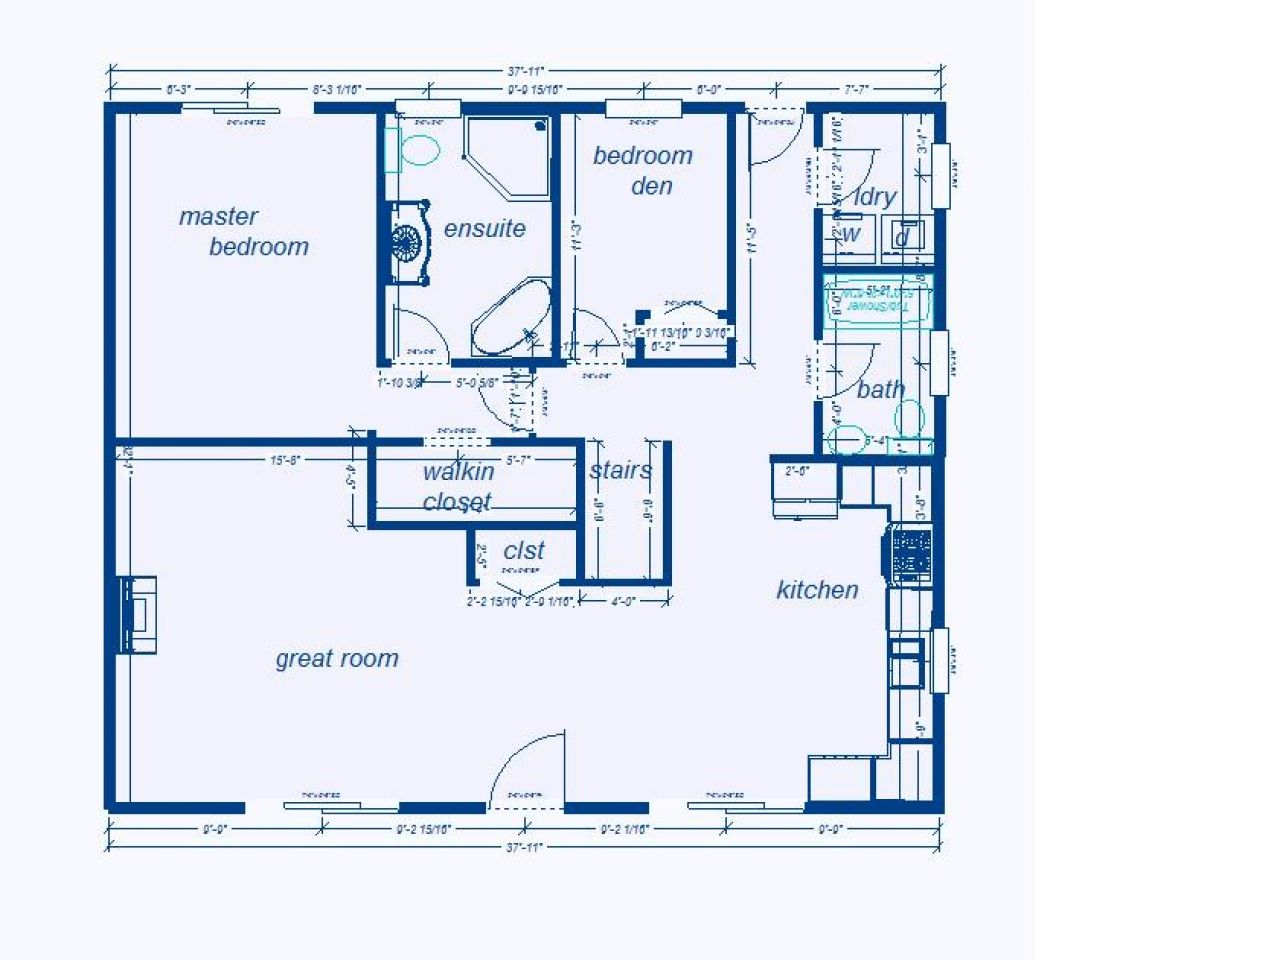 Foundation plans for houses blueprint house free in 12 top Small house blueprint